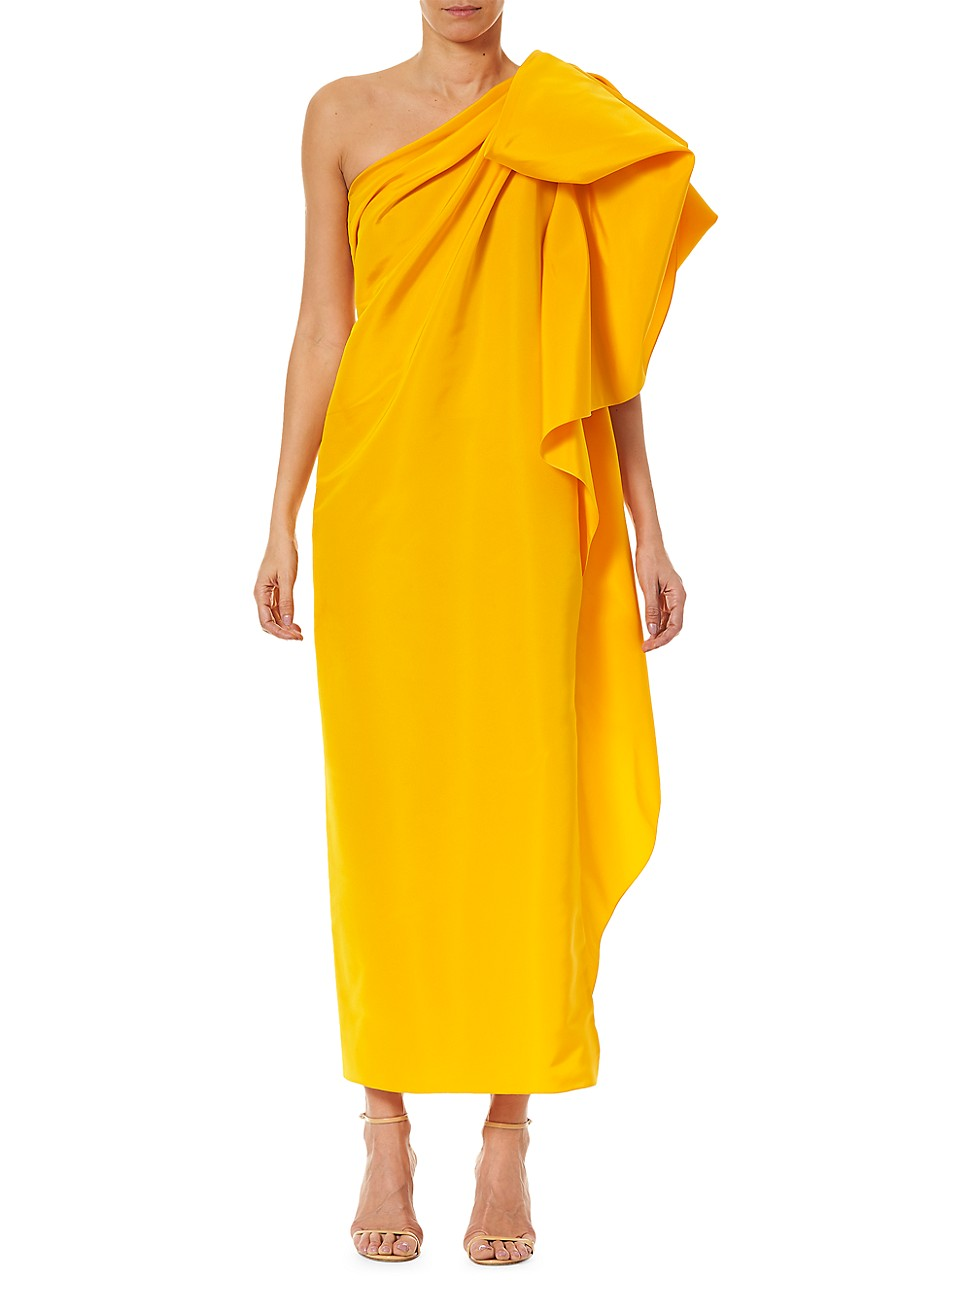 Carolina Herrera WOMEN'S DRAMATIC BOW ASYMMETRIC SILK GOWN